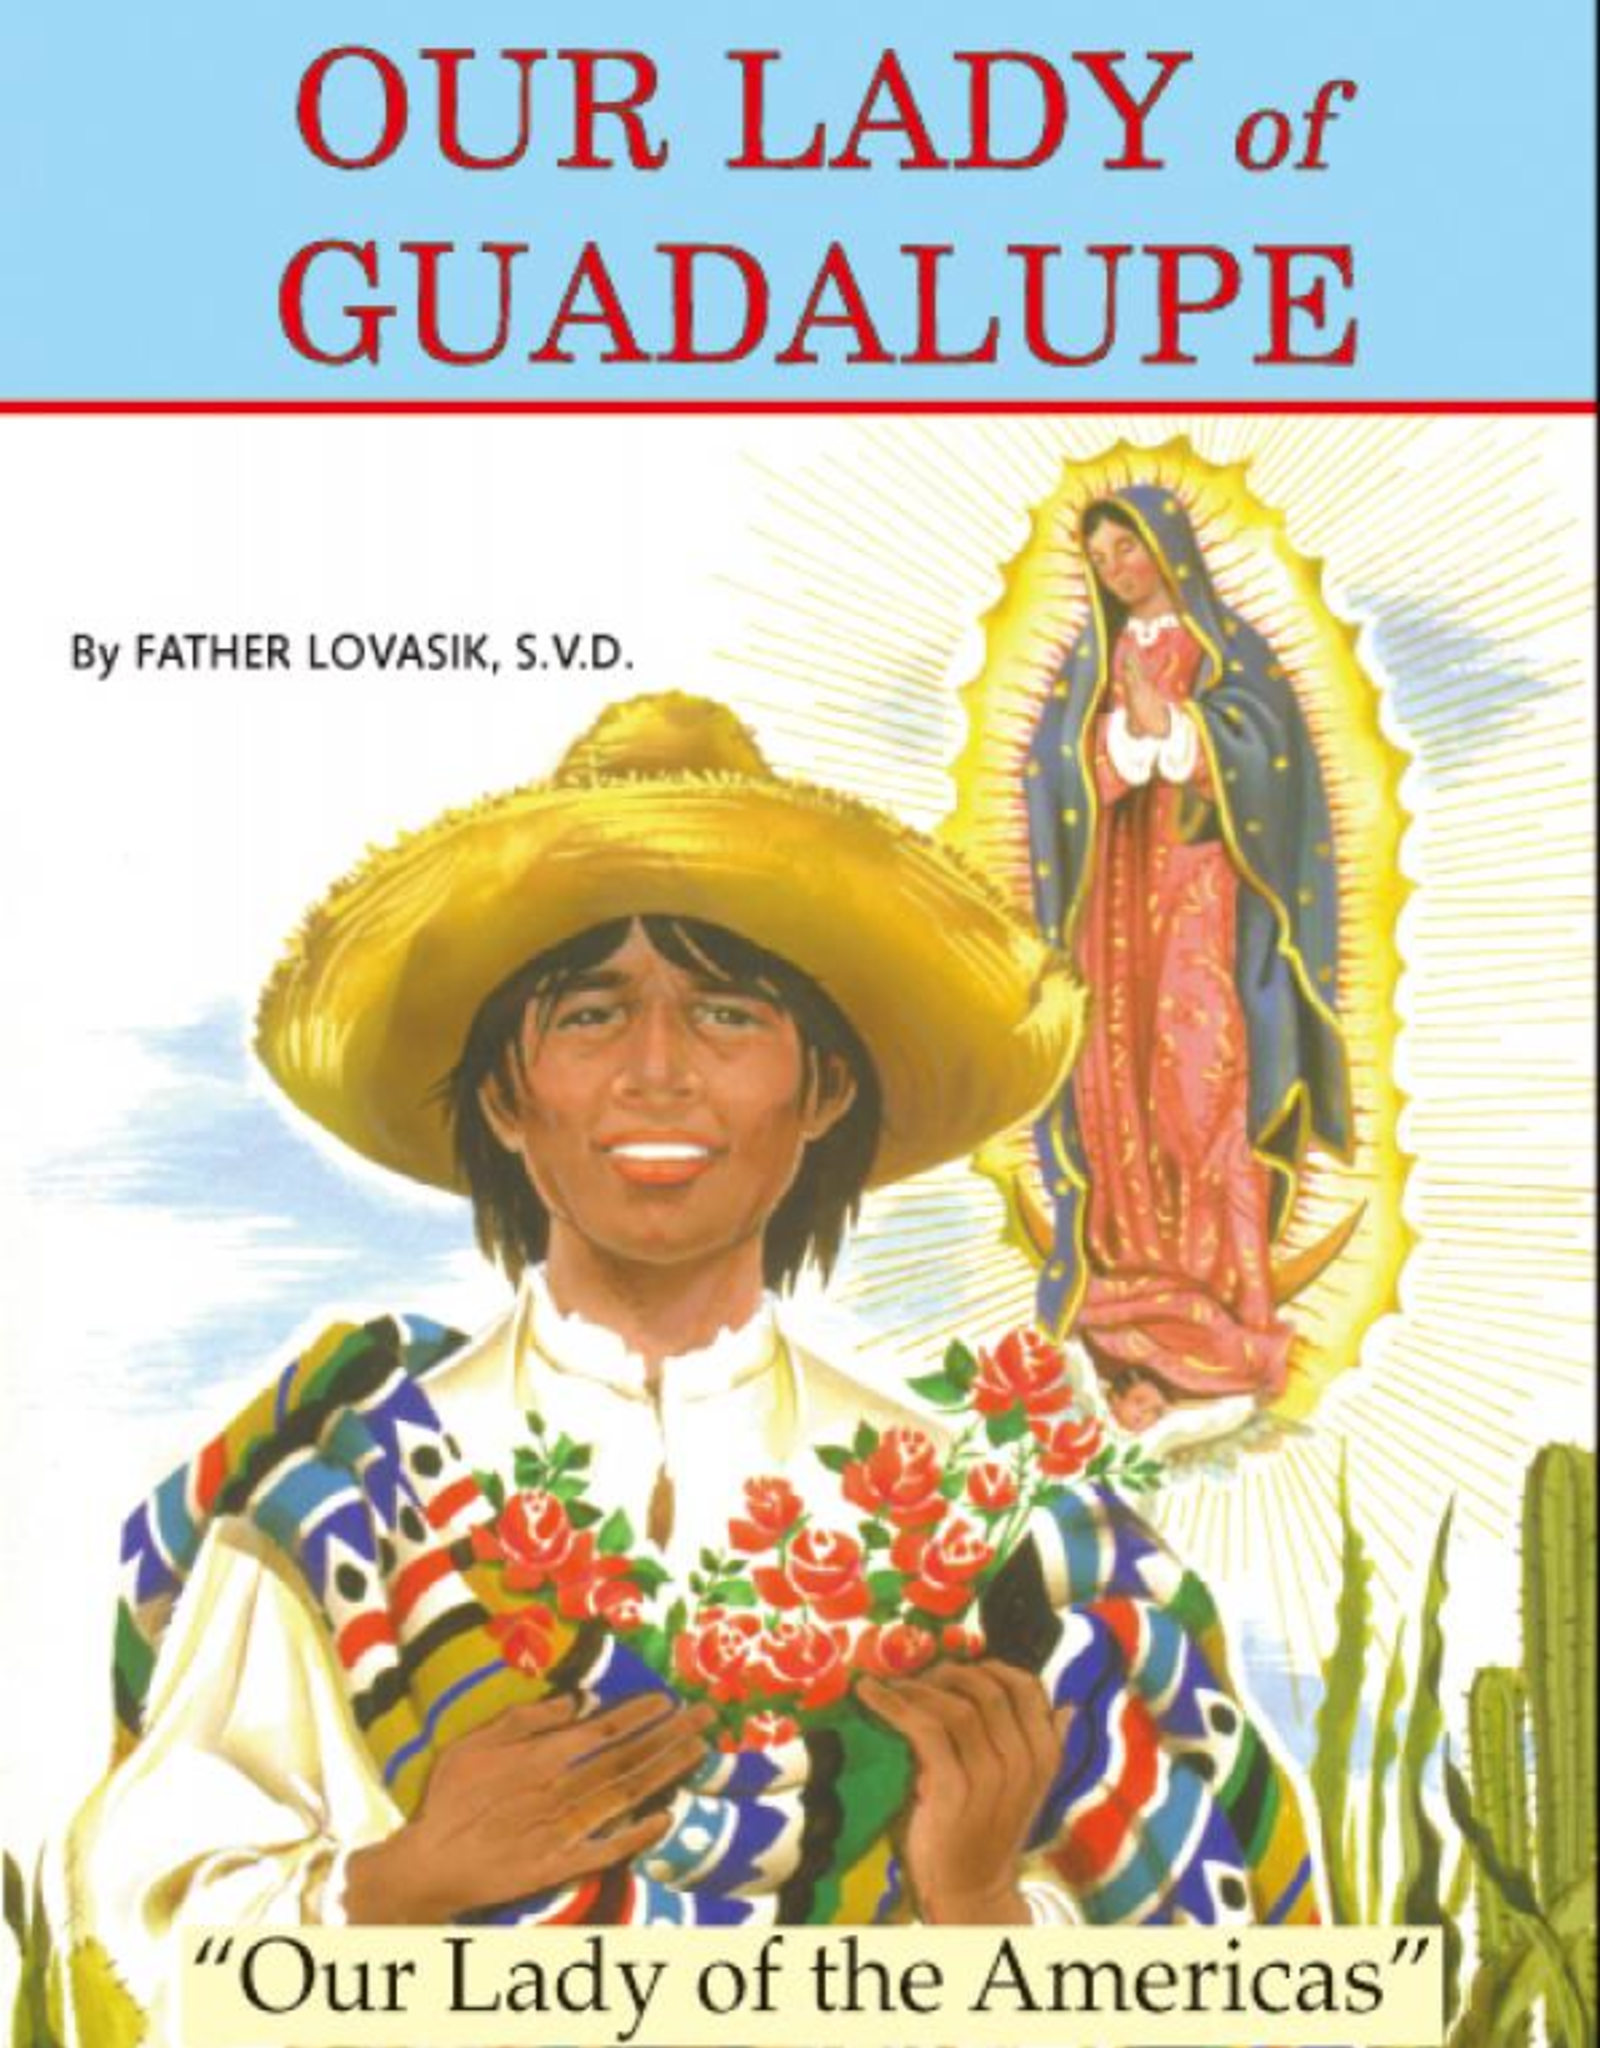 Catholic Book Publishing Our Lady of Guadalupe, by Rev. Lawrence Lovasik